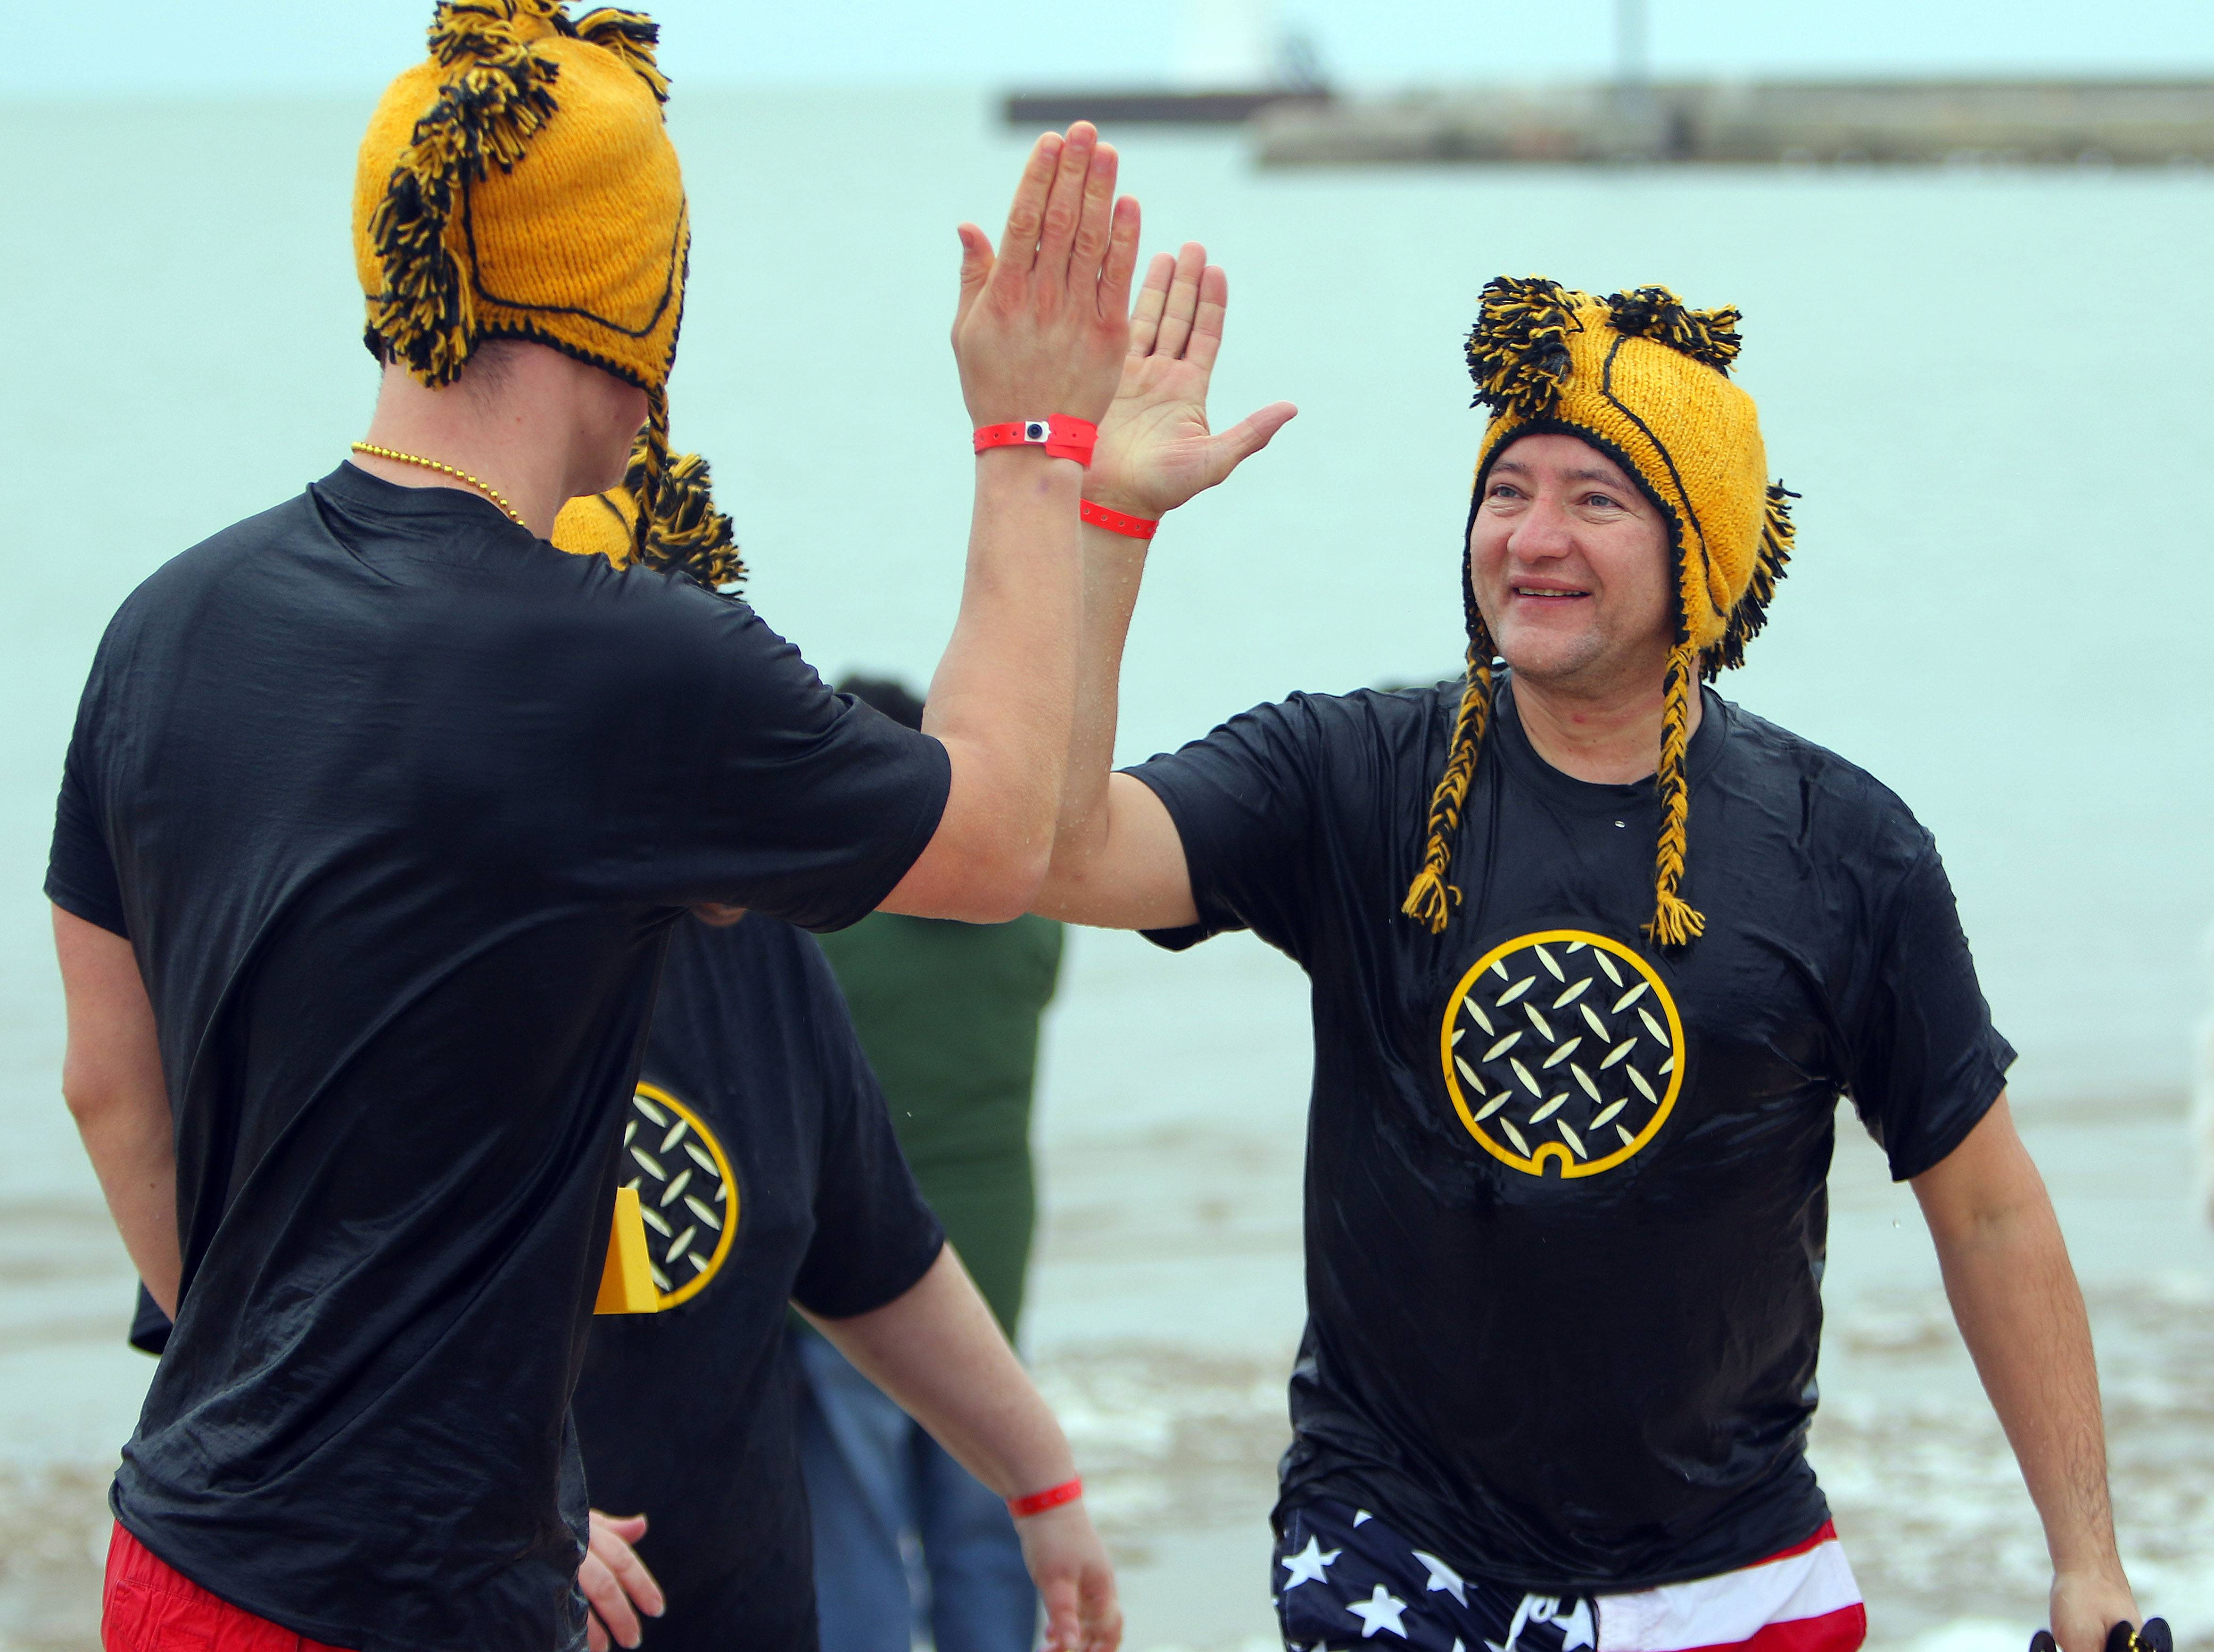 Zachary Wenner, left, and Felix Monterrosa, both of Highwood, high-five after participating in the 17th Annual Polar Bear Plunge Friday in Waukegan.